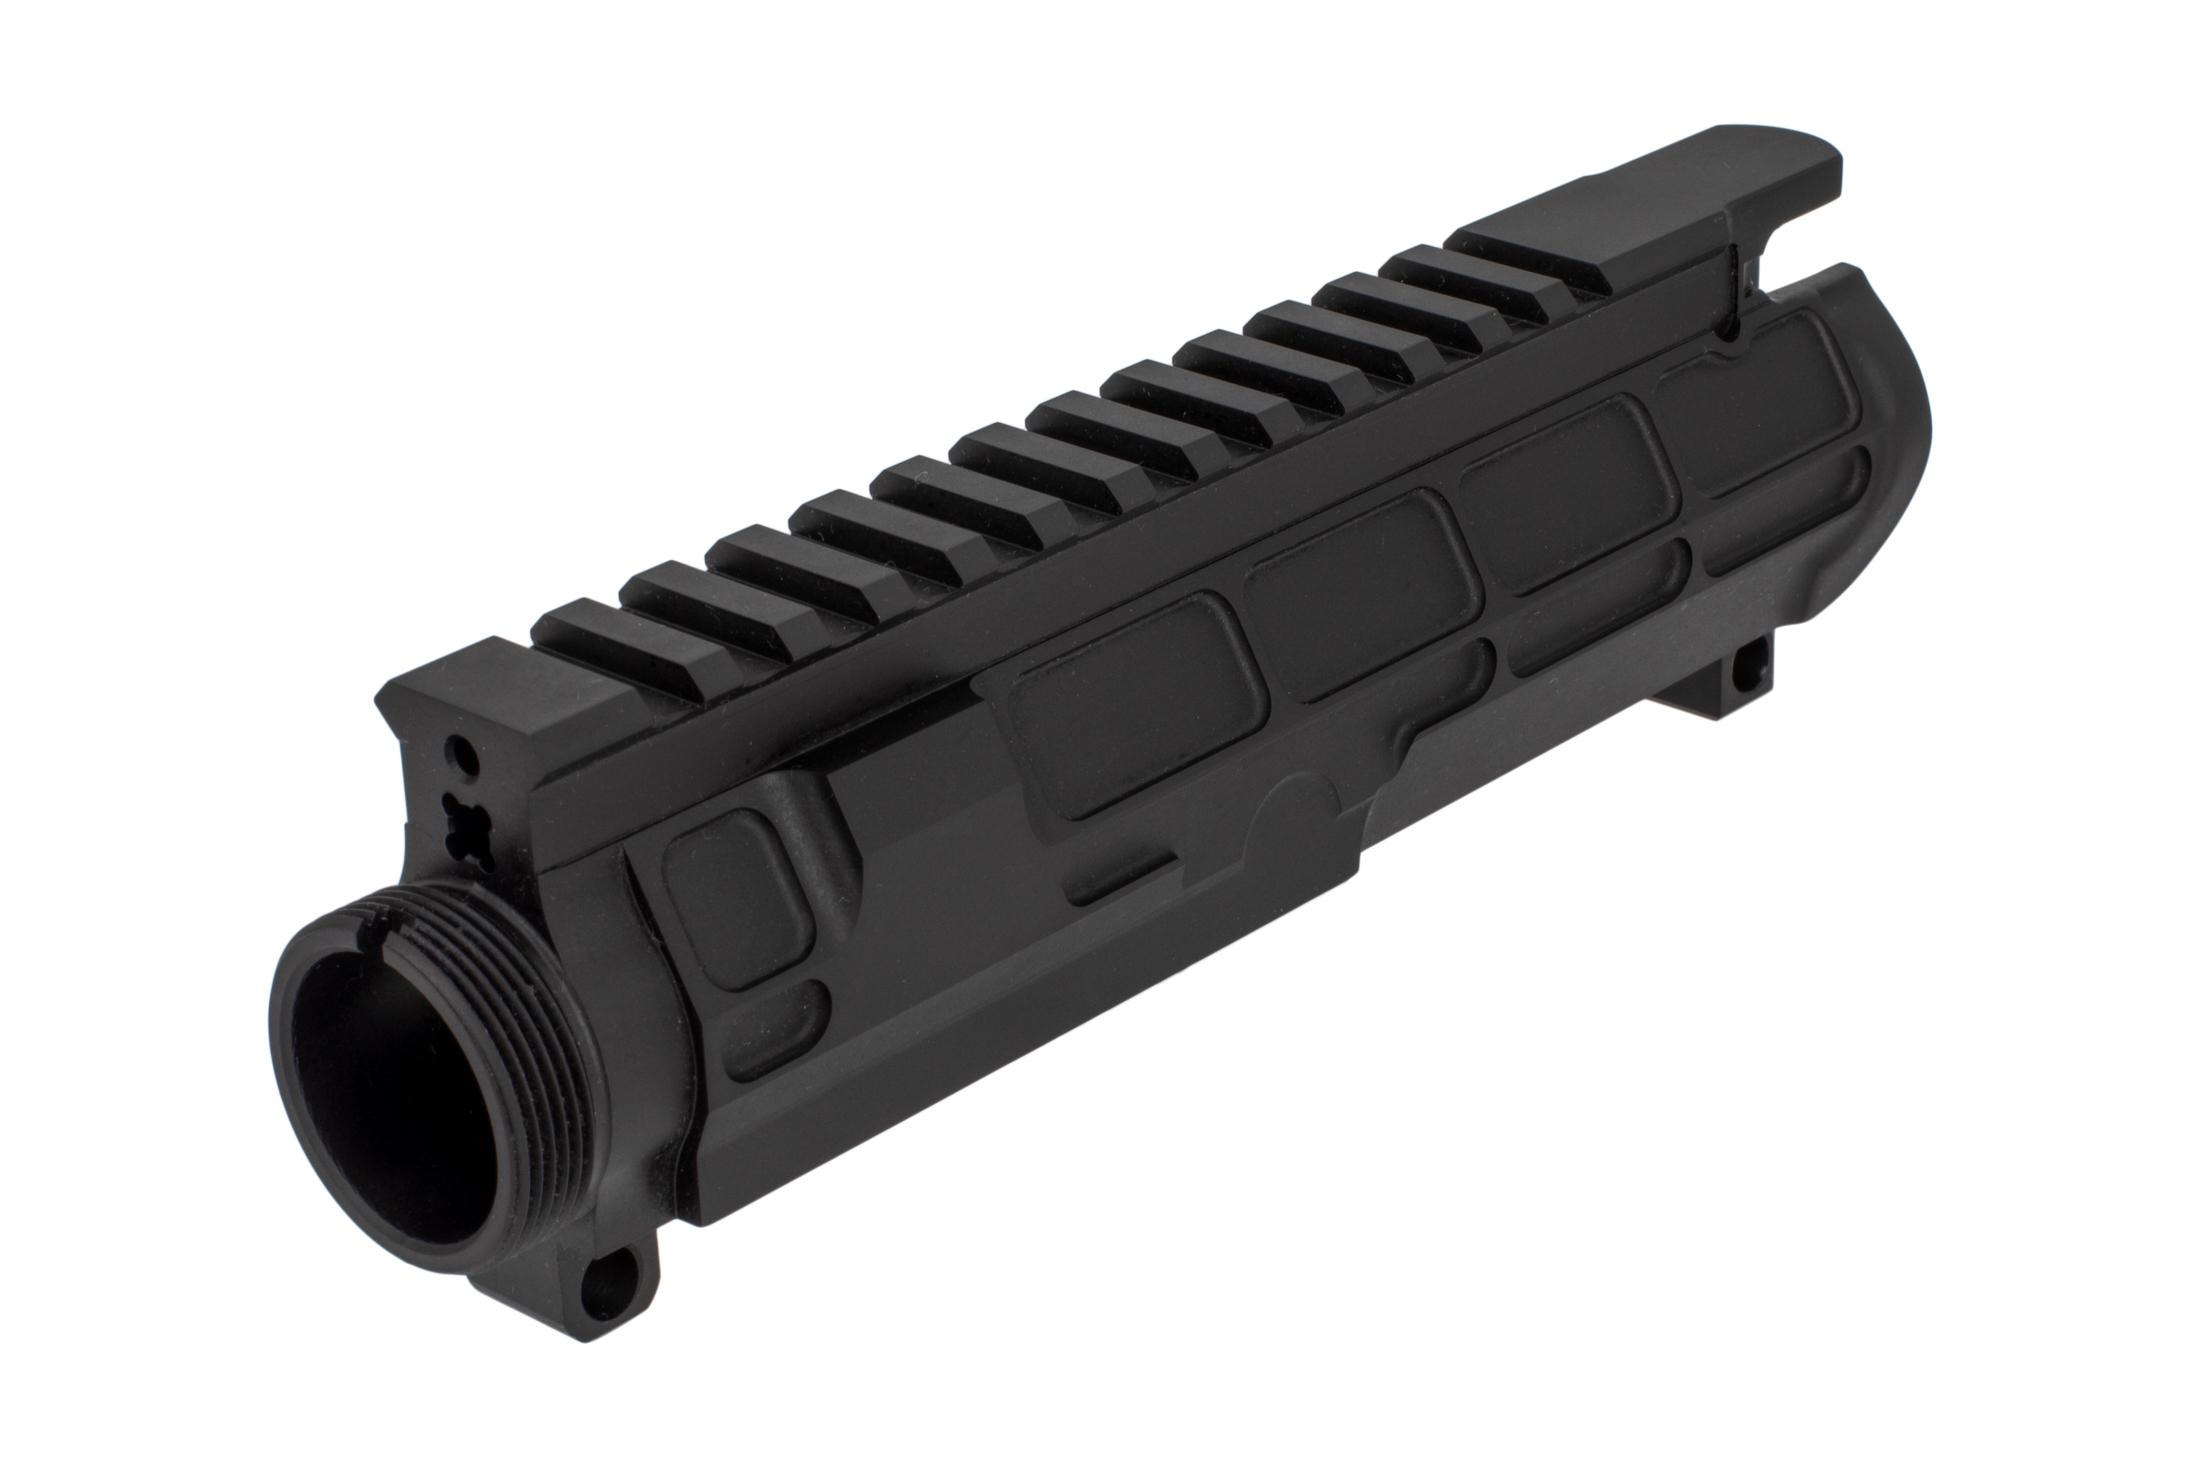 STT billet PILLAR upper receiver features a pocketed face to accept handguards with an integral truss for exceptional strength